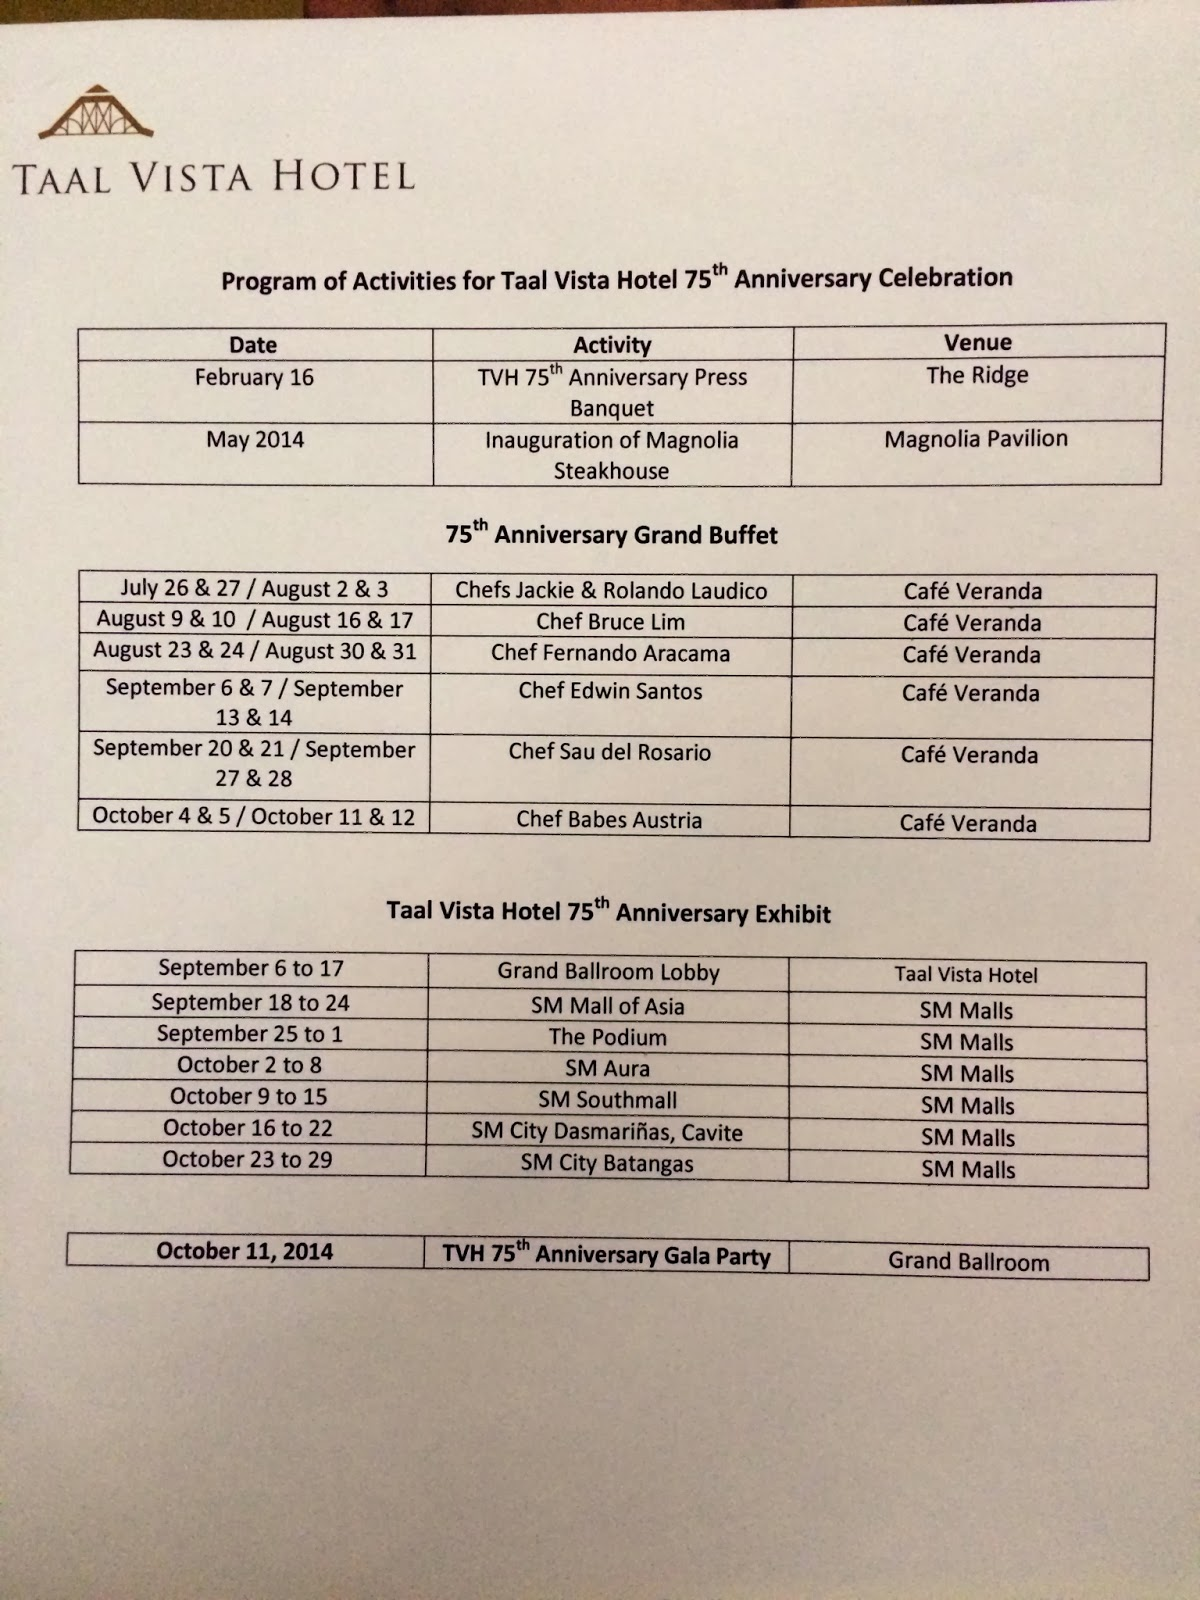 taal vista 75th anniversary complete schedule